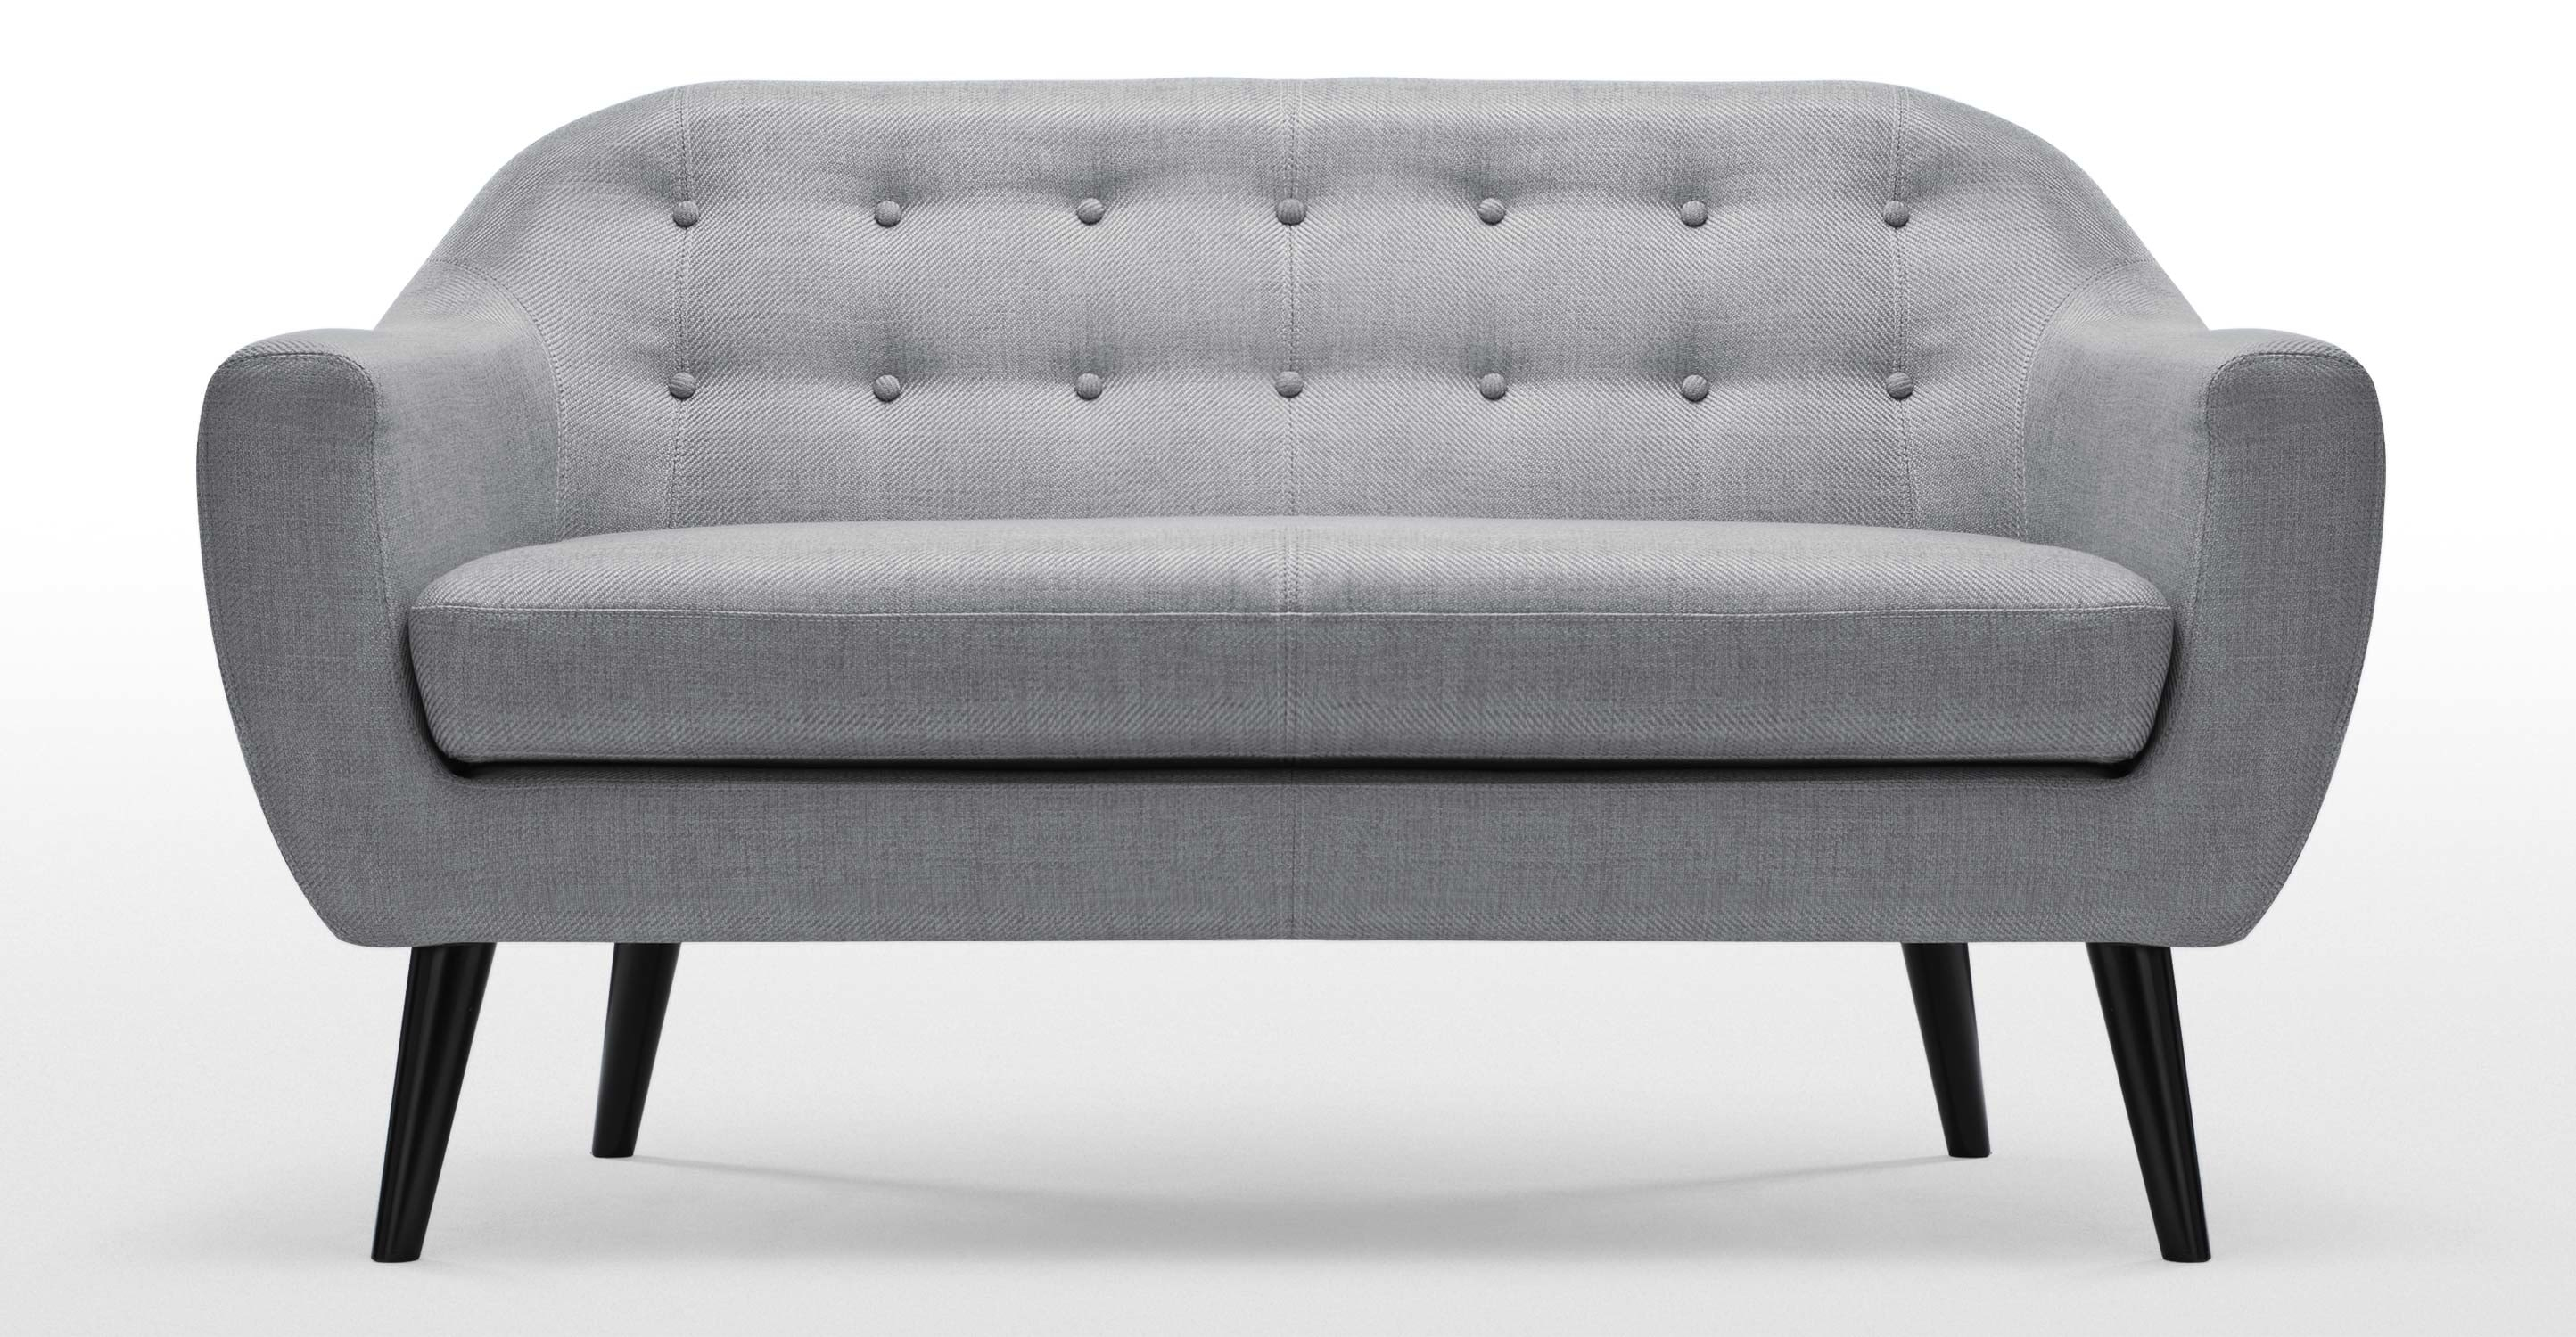 Ritchie 2 Seater Sofa In Pearl Grey Made Regarding Two Seater Chairs (Image 13 of 15)